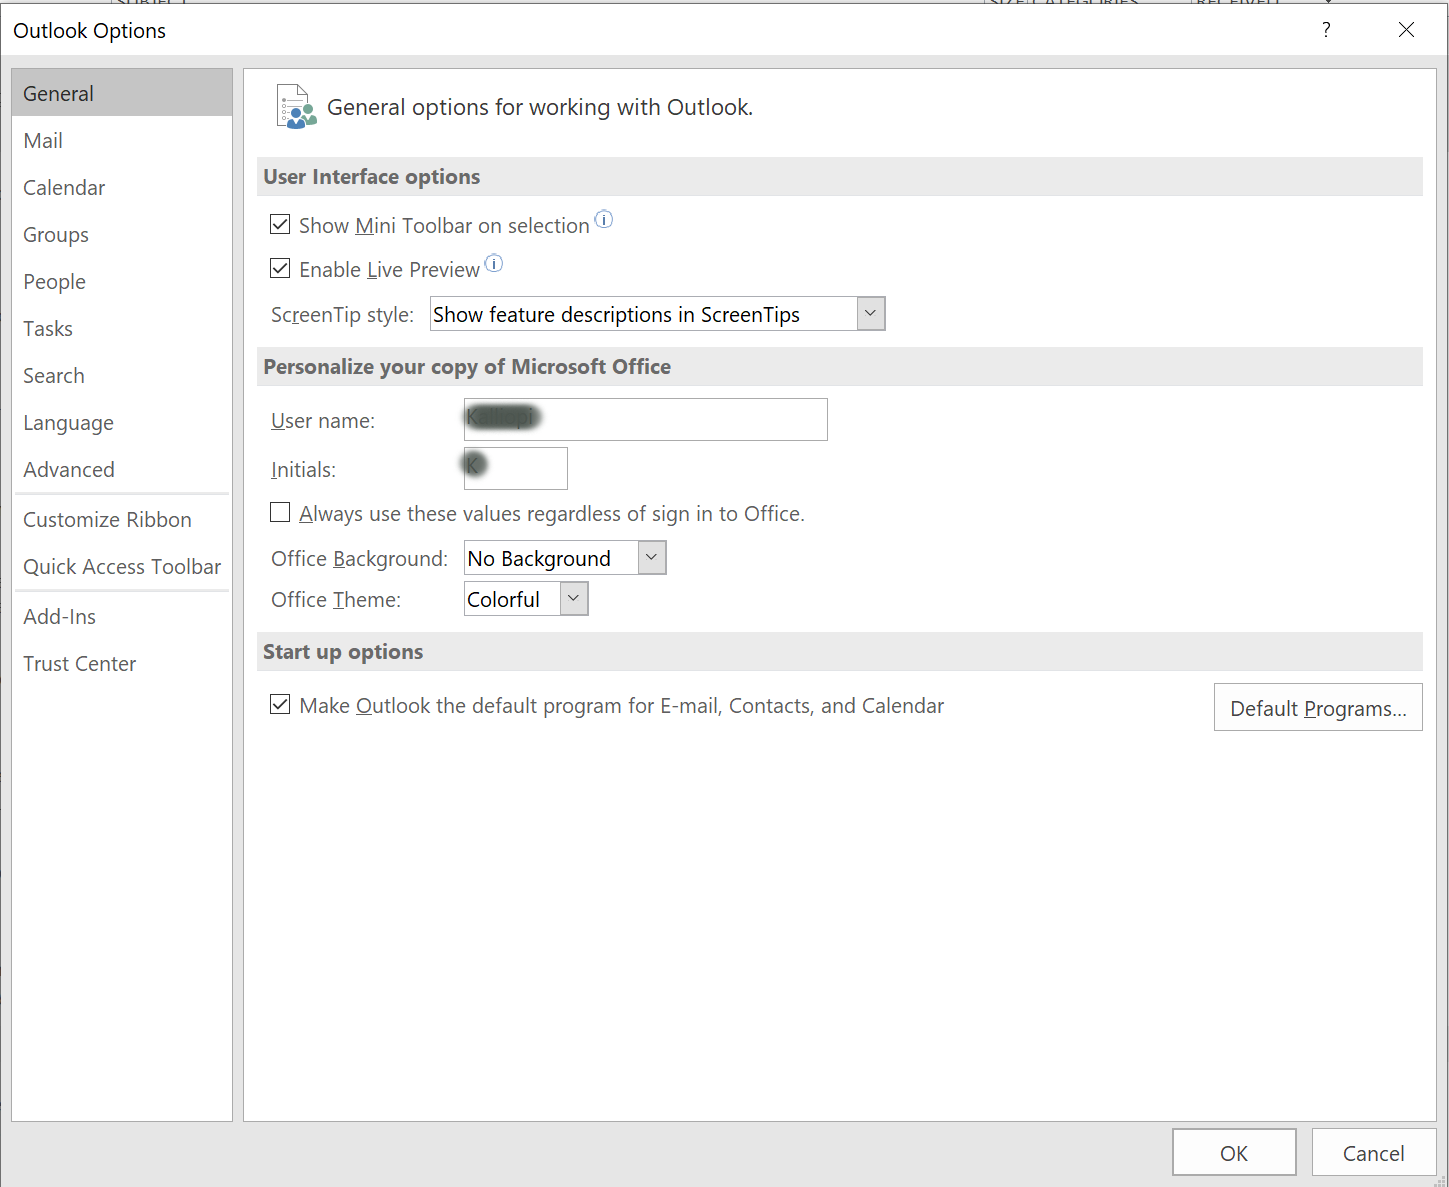 [Picture of OUTLOOK OPTIONS DIALOG BOX]